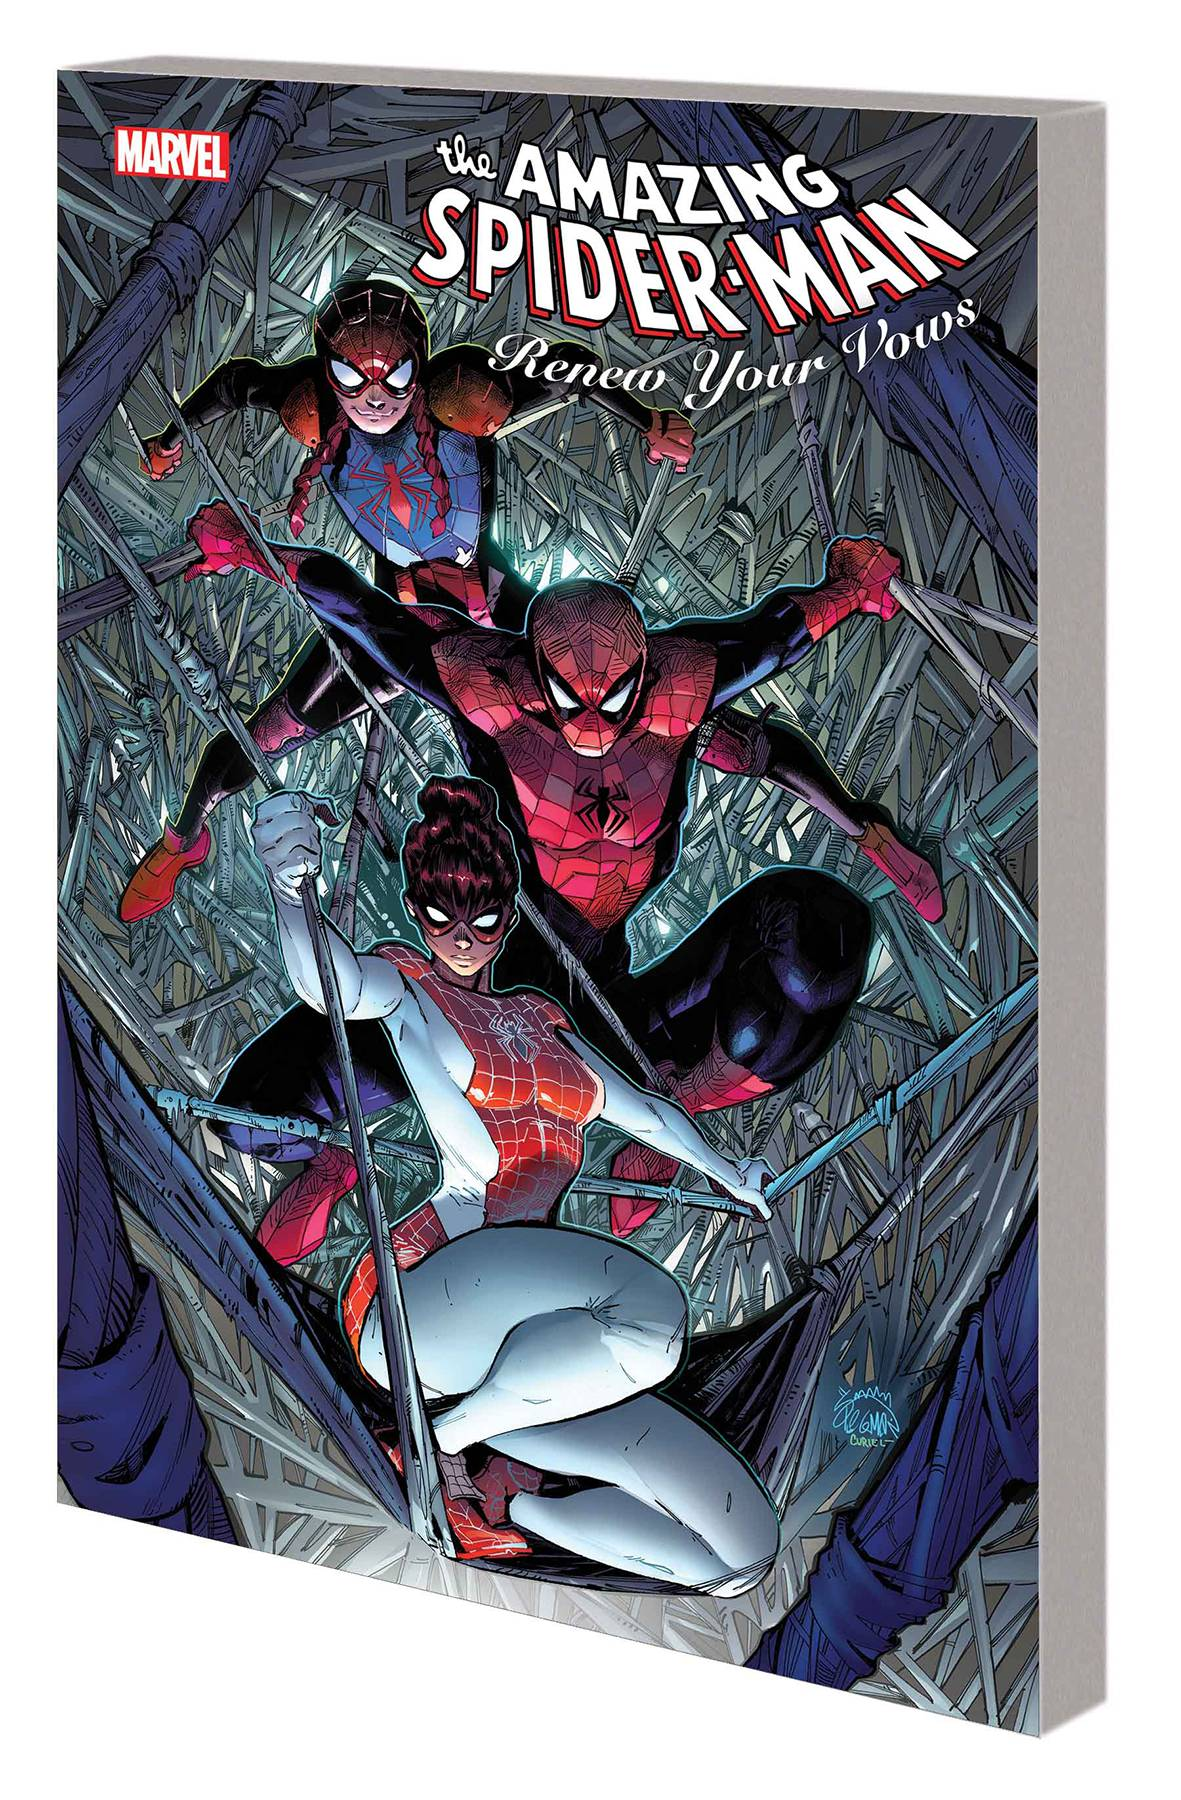 AMAZING SPIDER-MAN RENEW VOWS TP 1 BRAWL IN FAMILY.jpg